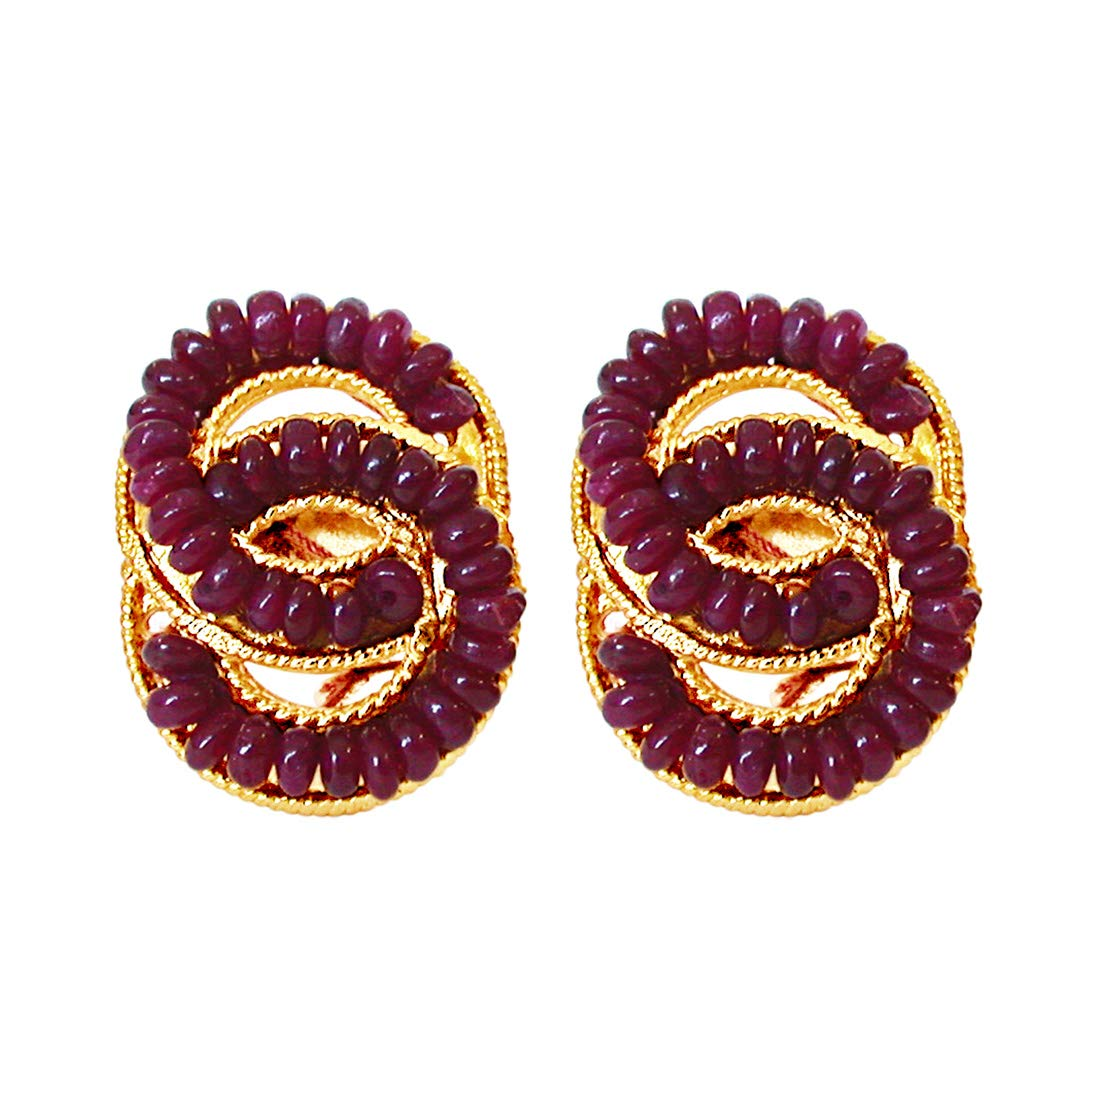 She's Mine Forever - Real Ruby Beads & Gold Plated Interlocked Earrings for Women (SE75)